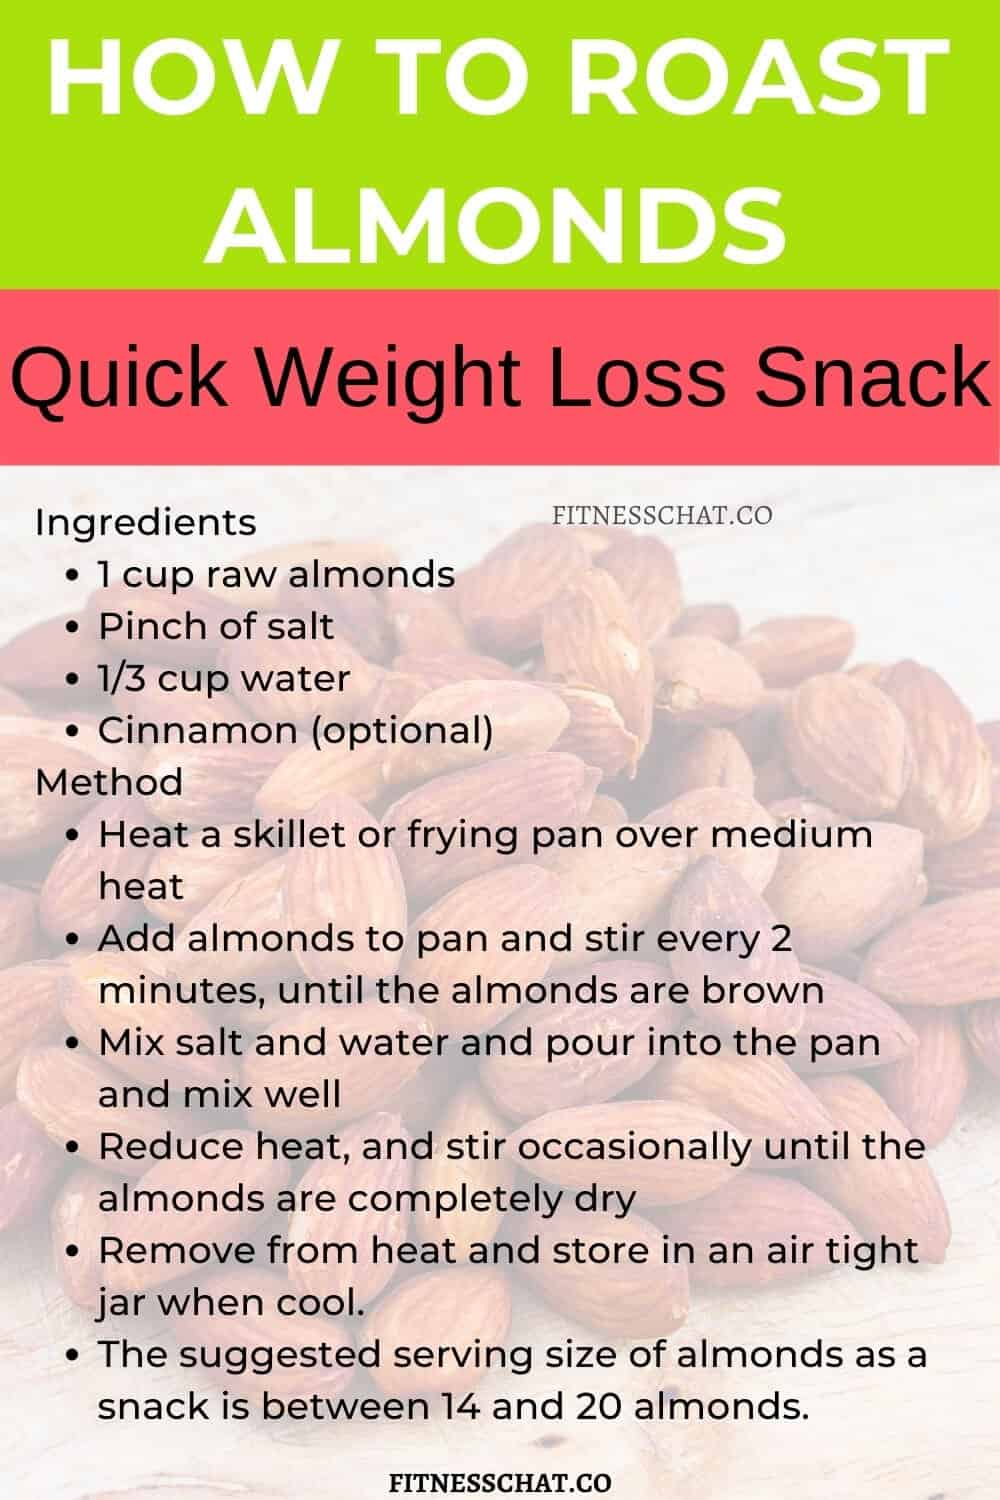 How to roast almonds as a snack for weight loss